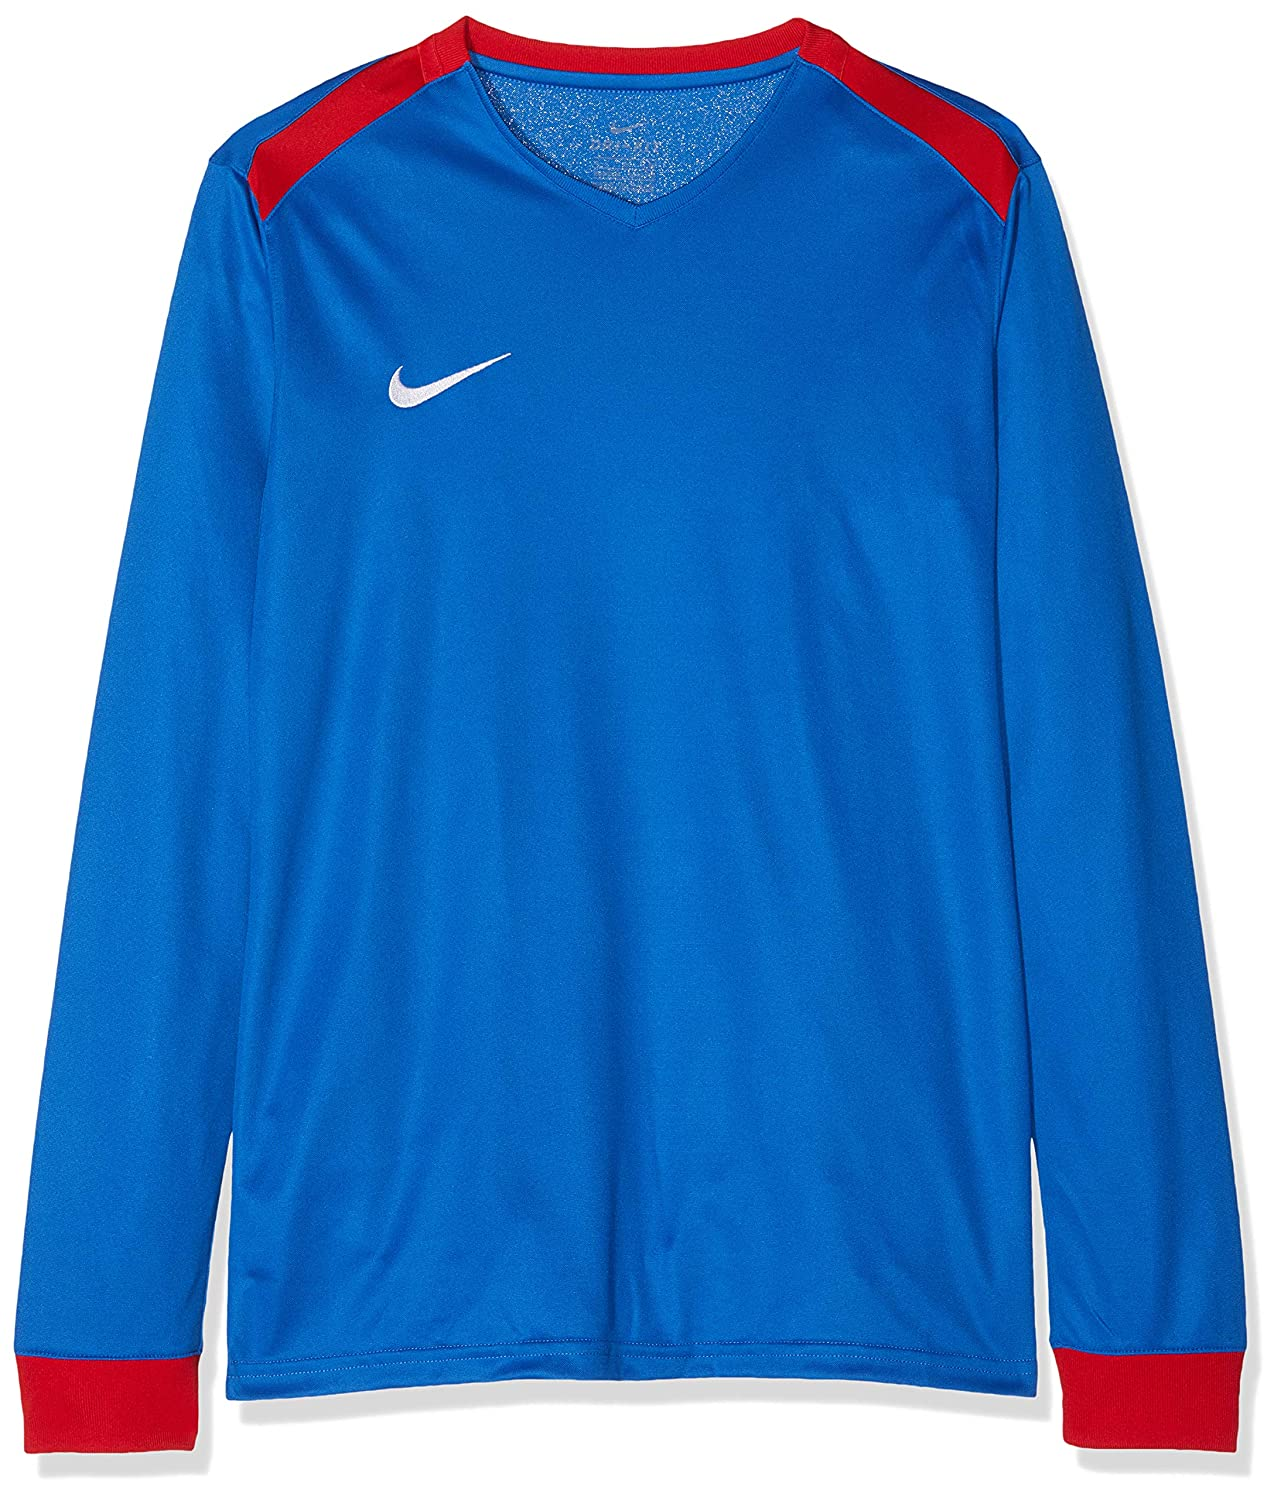 fca363ff Details about Nike Park Derby II Children's Shirt – Royal Blue/University  Red/White, XL